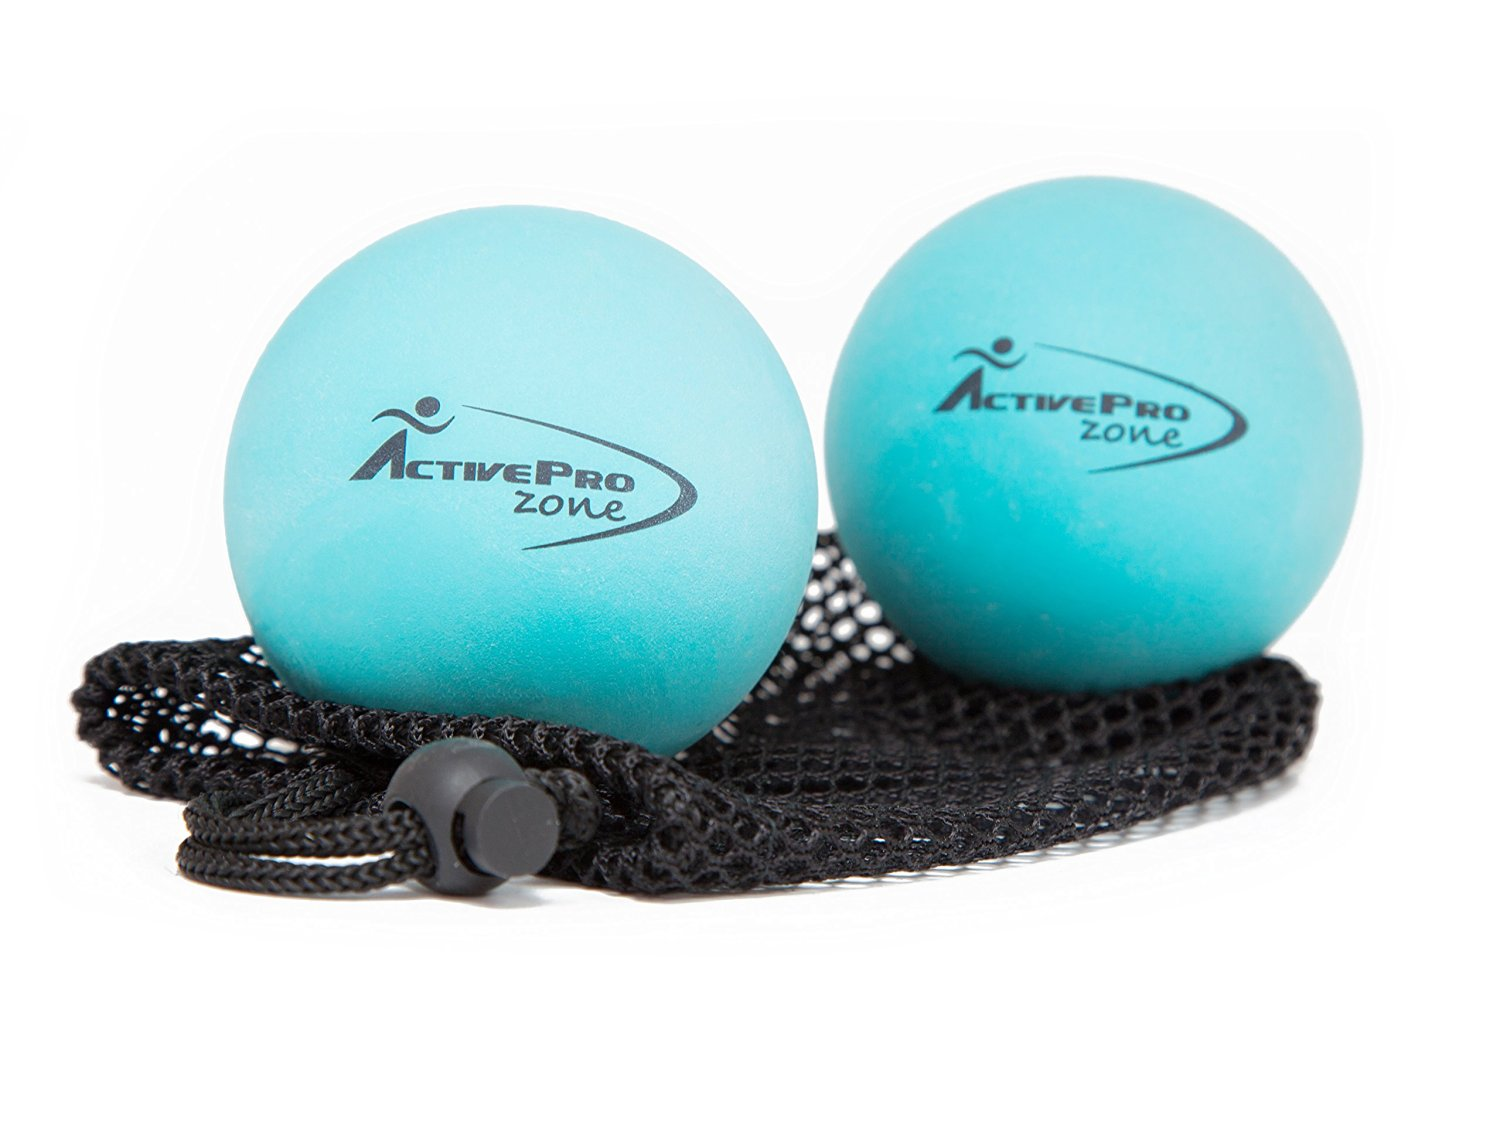 ActiveProZone Therapy Massage Ball - Instant Muscle PAIN RELIEF. Proven EFFECTIVE for Myofascial Release , Deep Tissue Pressure , Yoga & Trigger Point Treatments. SET - 2 Extra Firm Balls W/ Mesh Bag